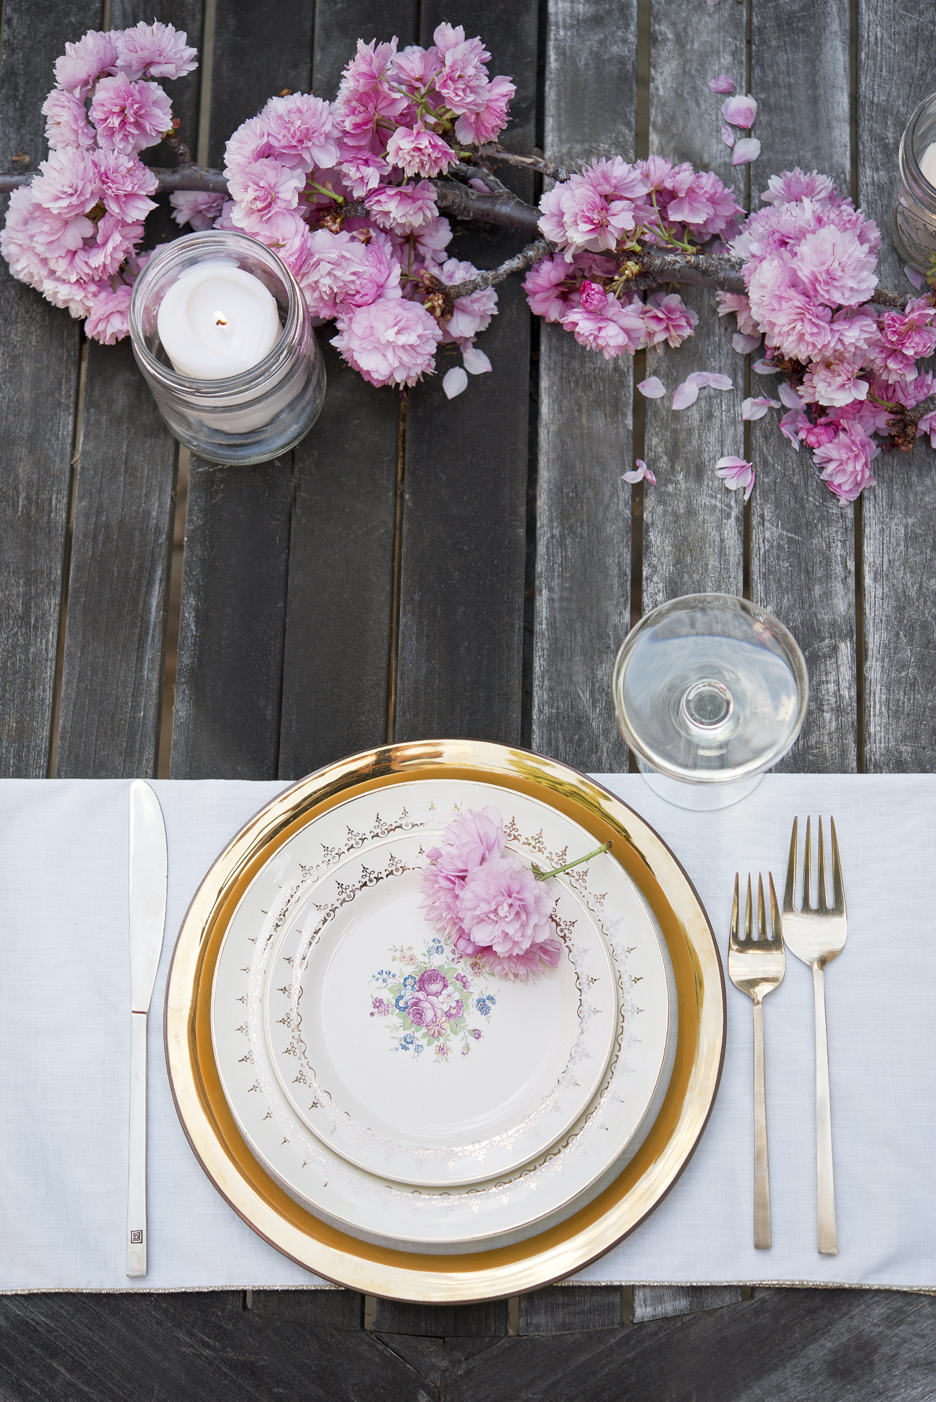 We choose a non-traditional place setting